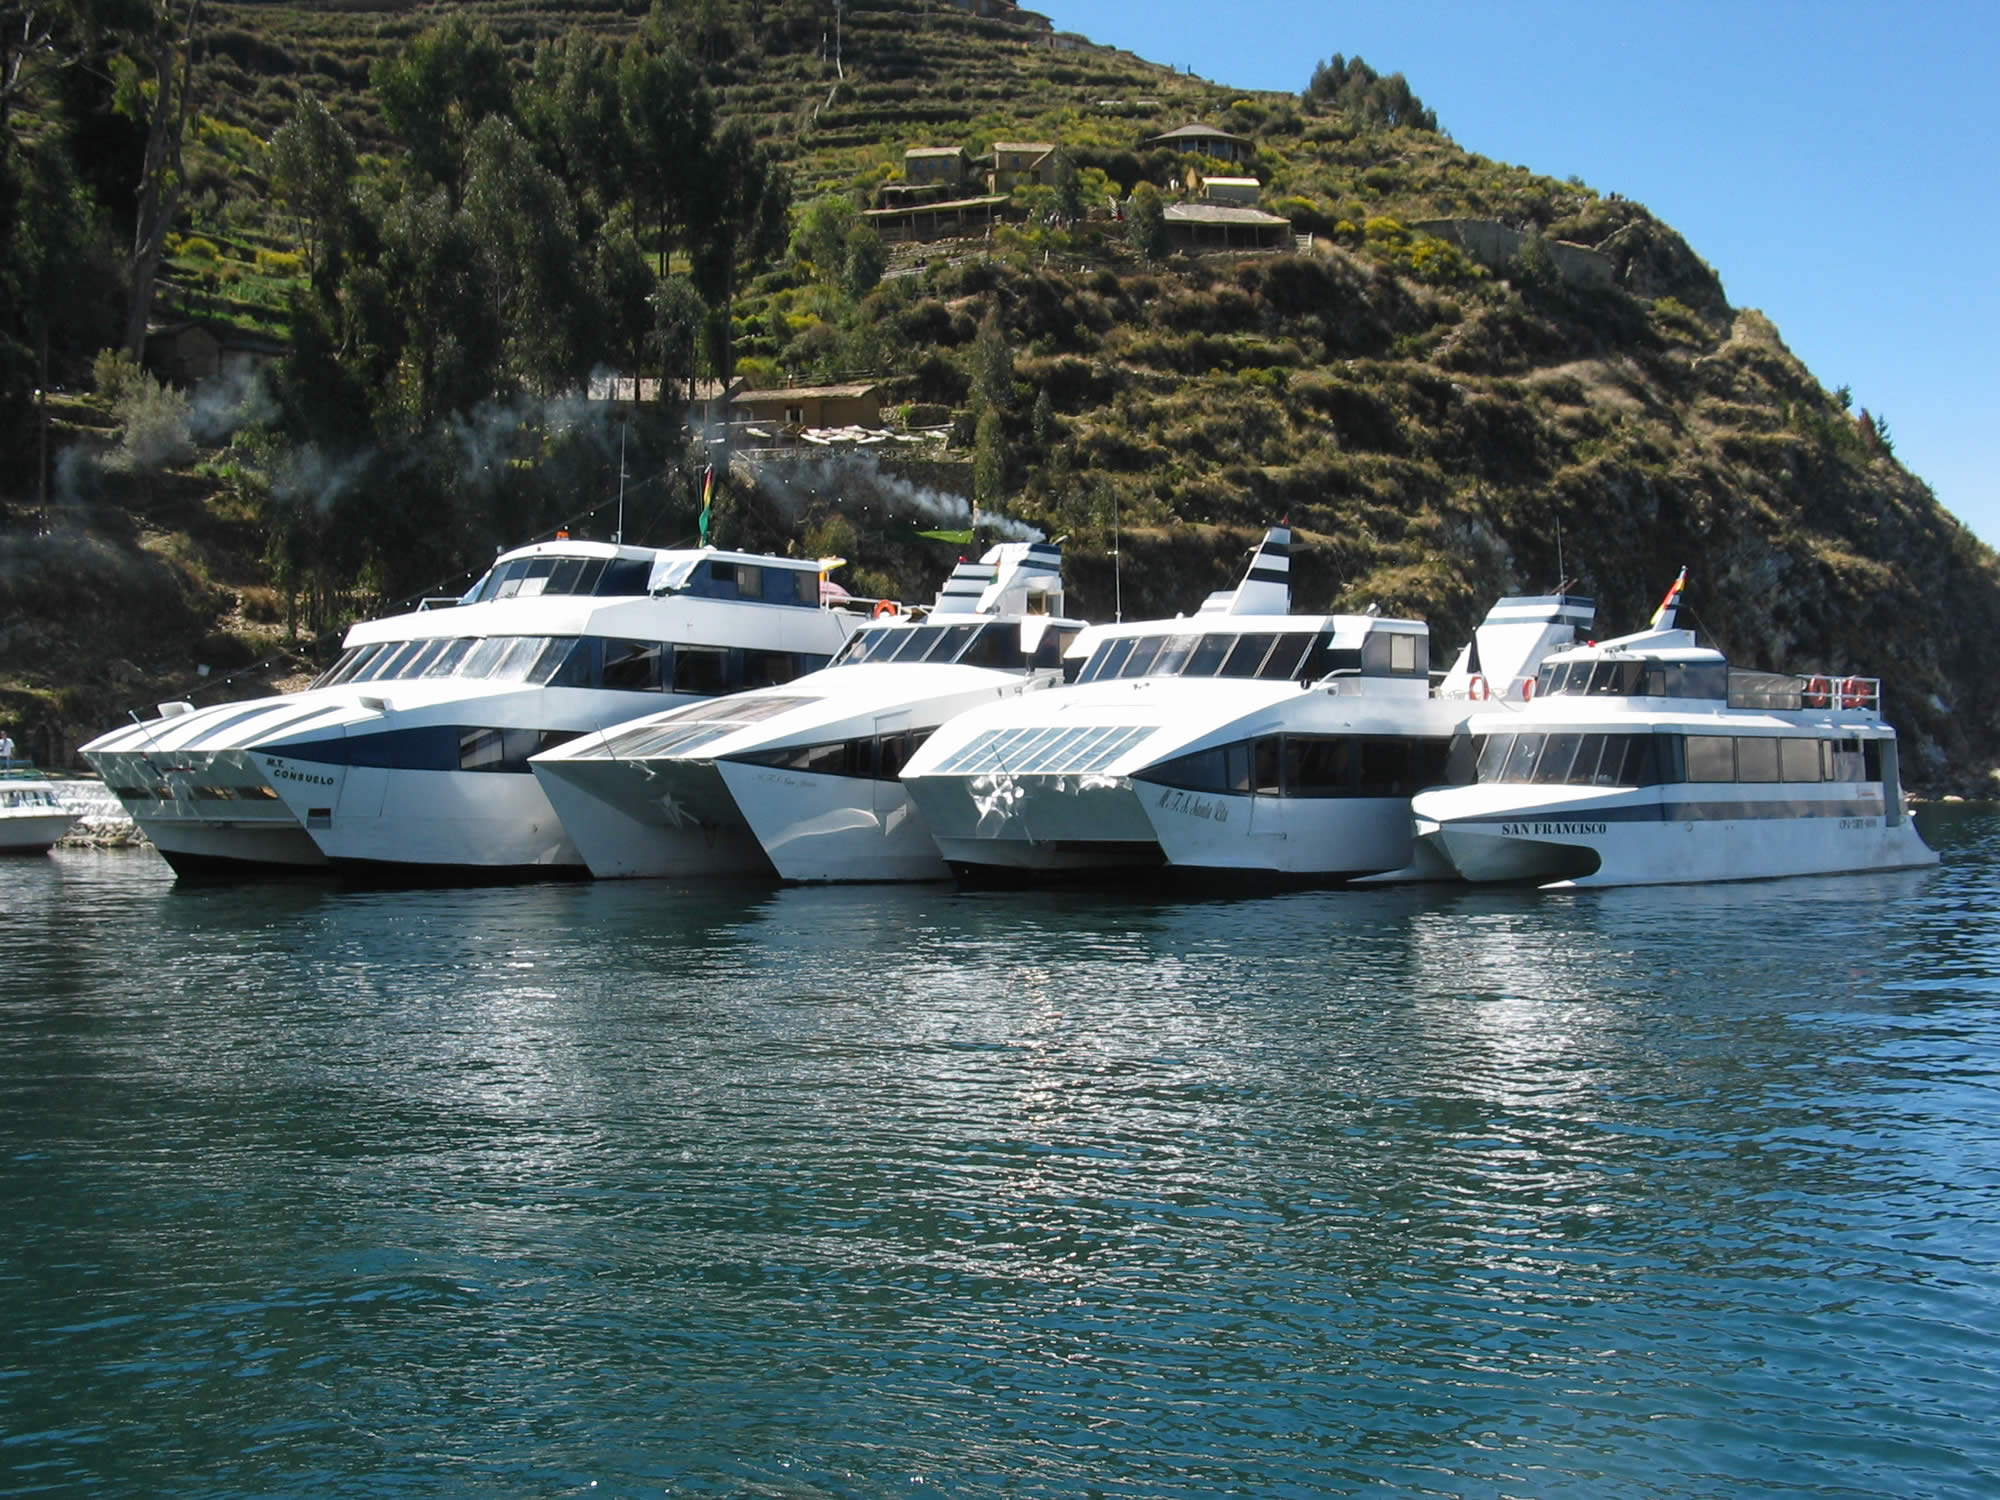 Special offer for New Year - Catamaran La Paz - Isla del sol - La Paz , 2 Days, 1 Night